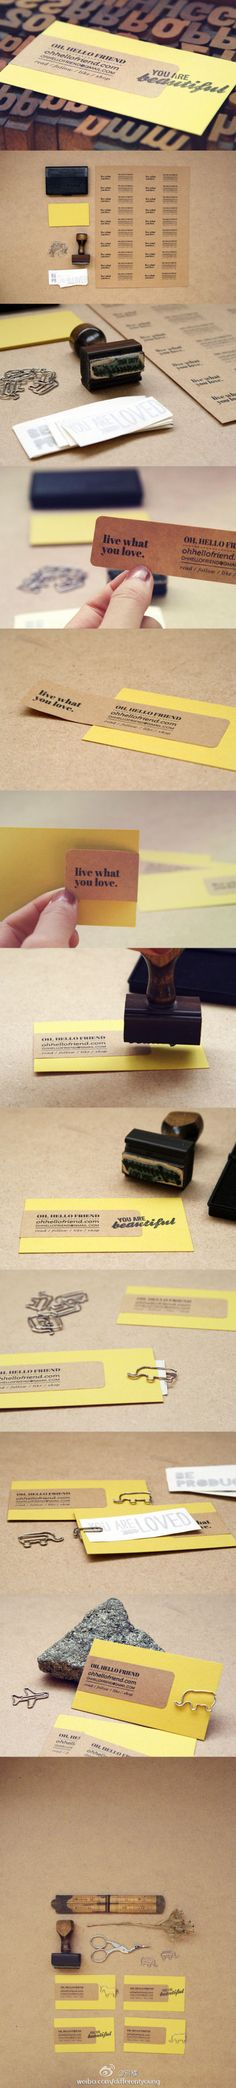 Oh, Hello Friend! Creative new style of business card gives you contact info with a little pick-me-up